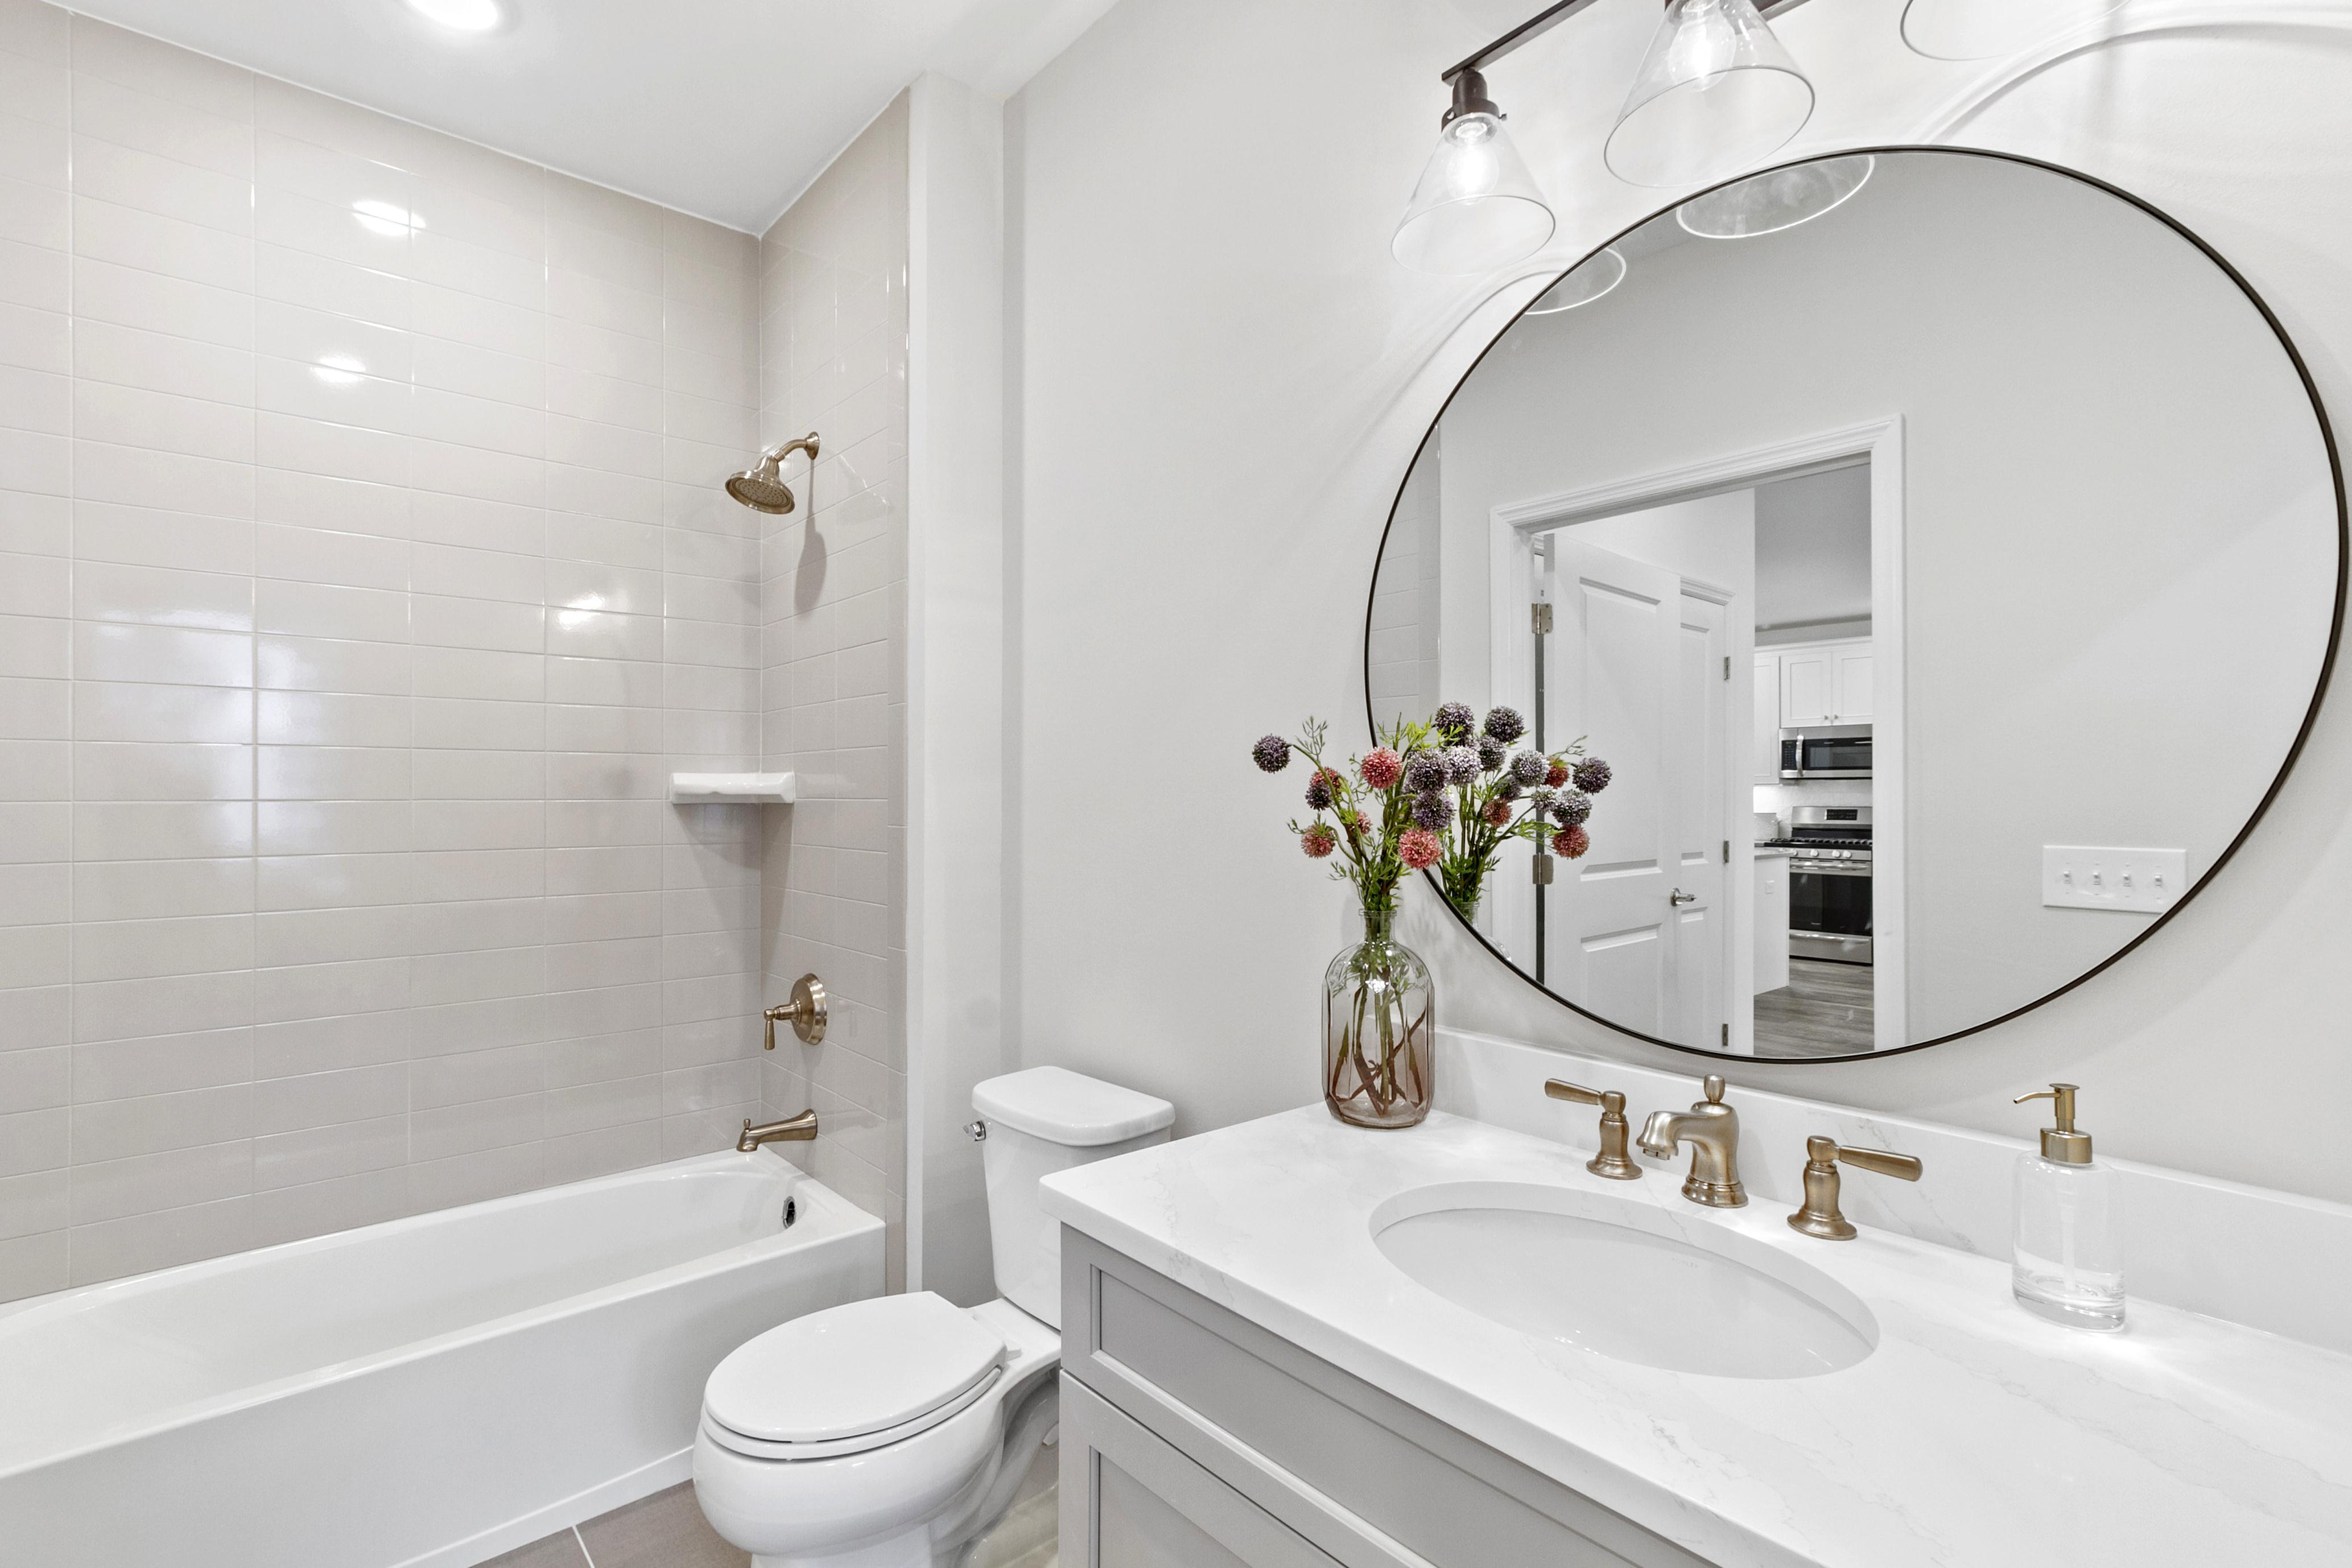 Bathroom featured in The Ashford By Beechwood Homes in Nassau-Suffolk, NY